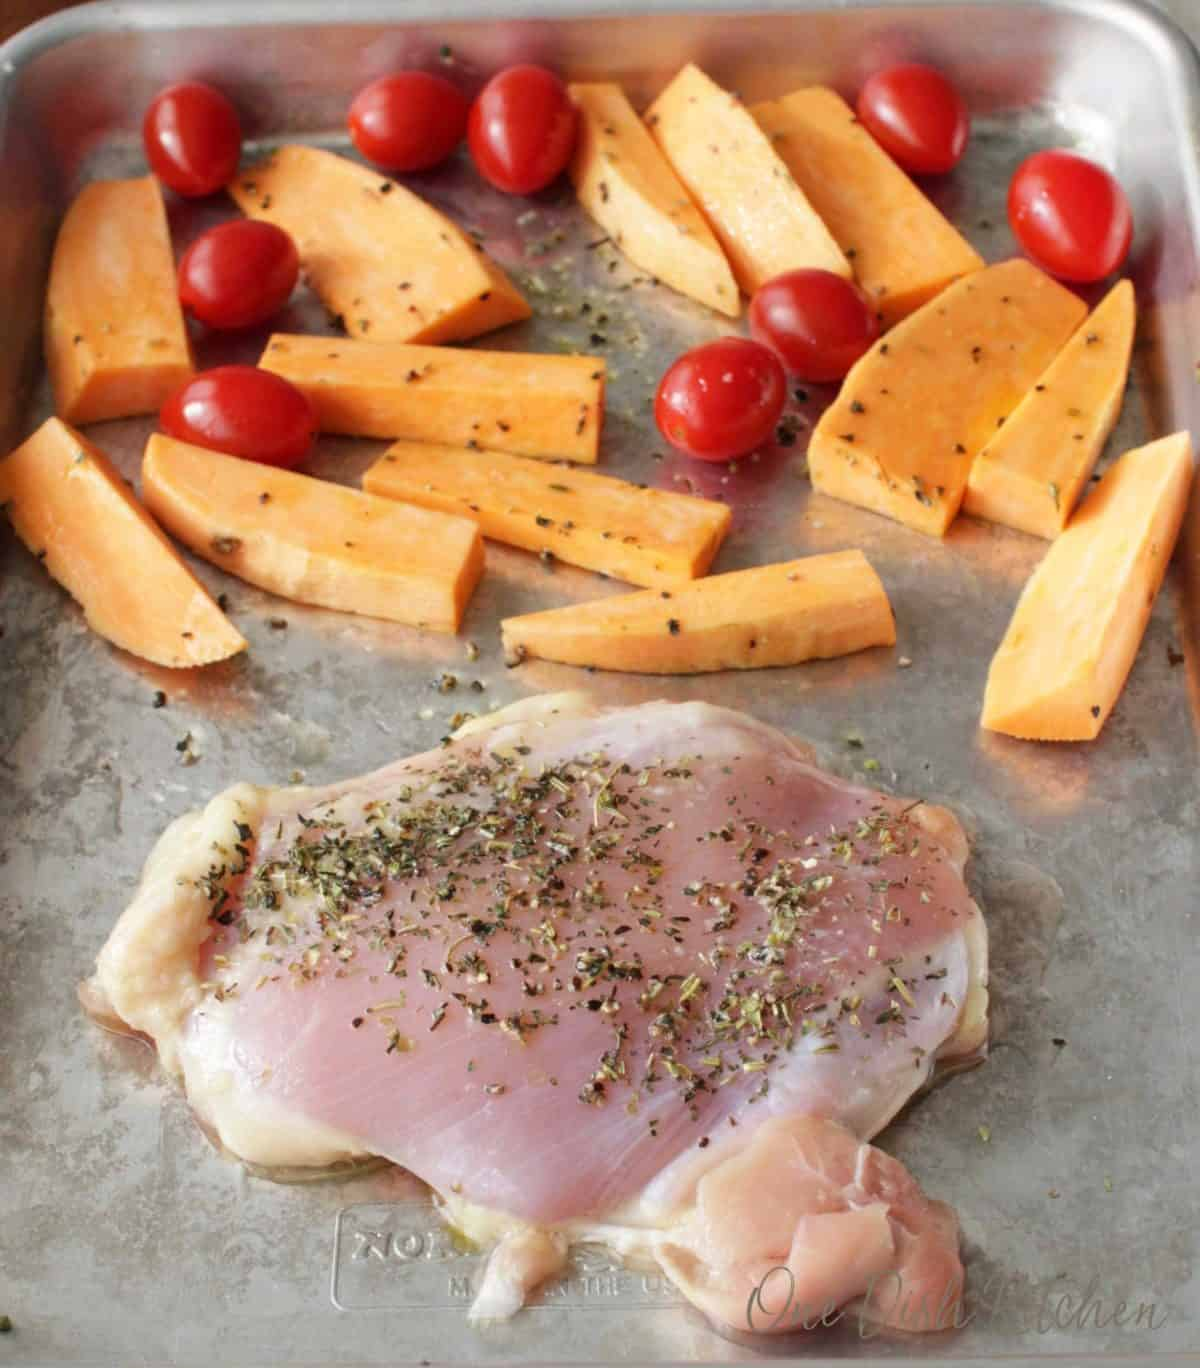 Raw chicken seasoned on a sheet pan along with sweet potato slices and cherry tomatoes